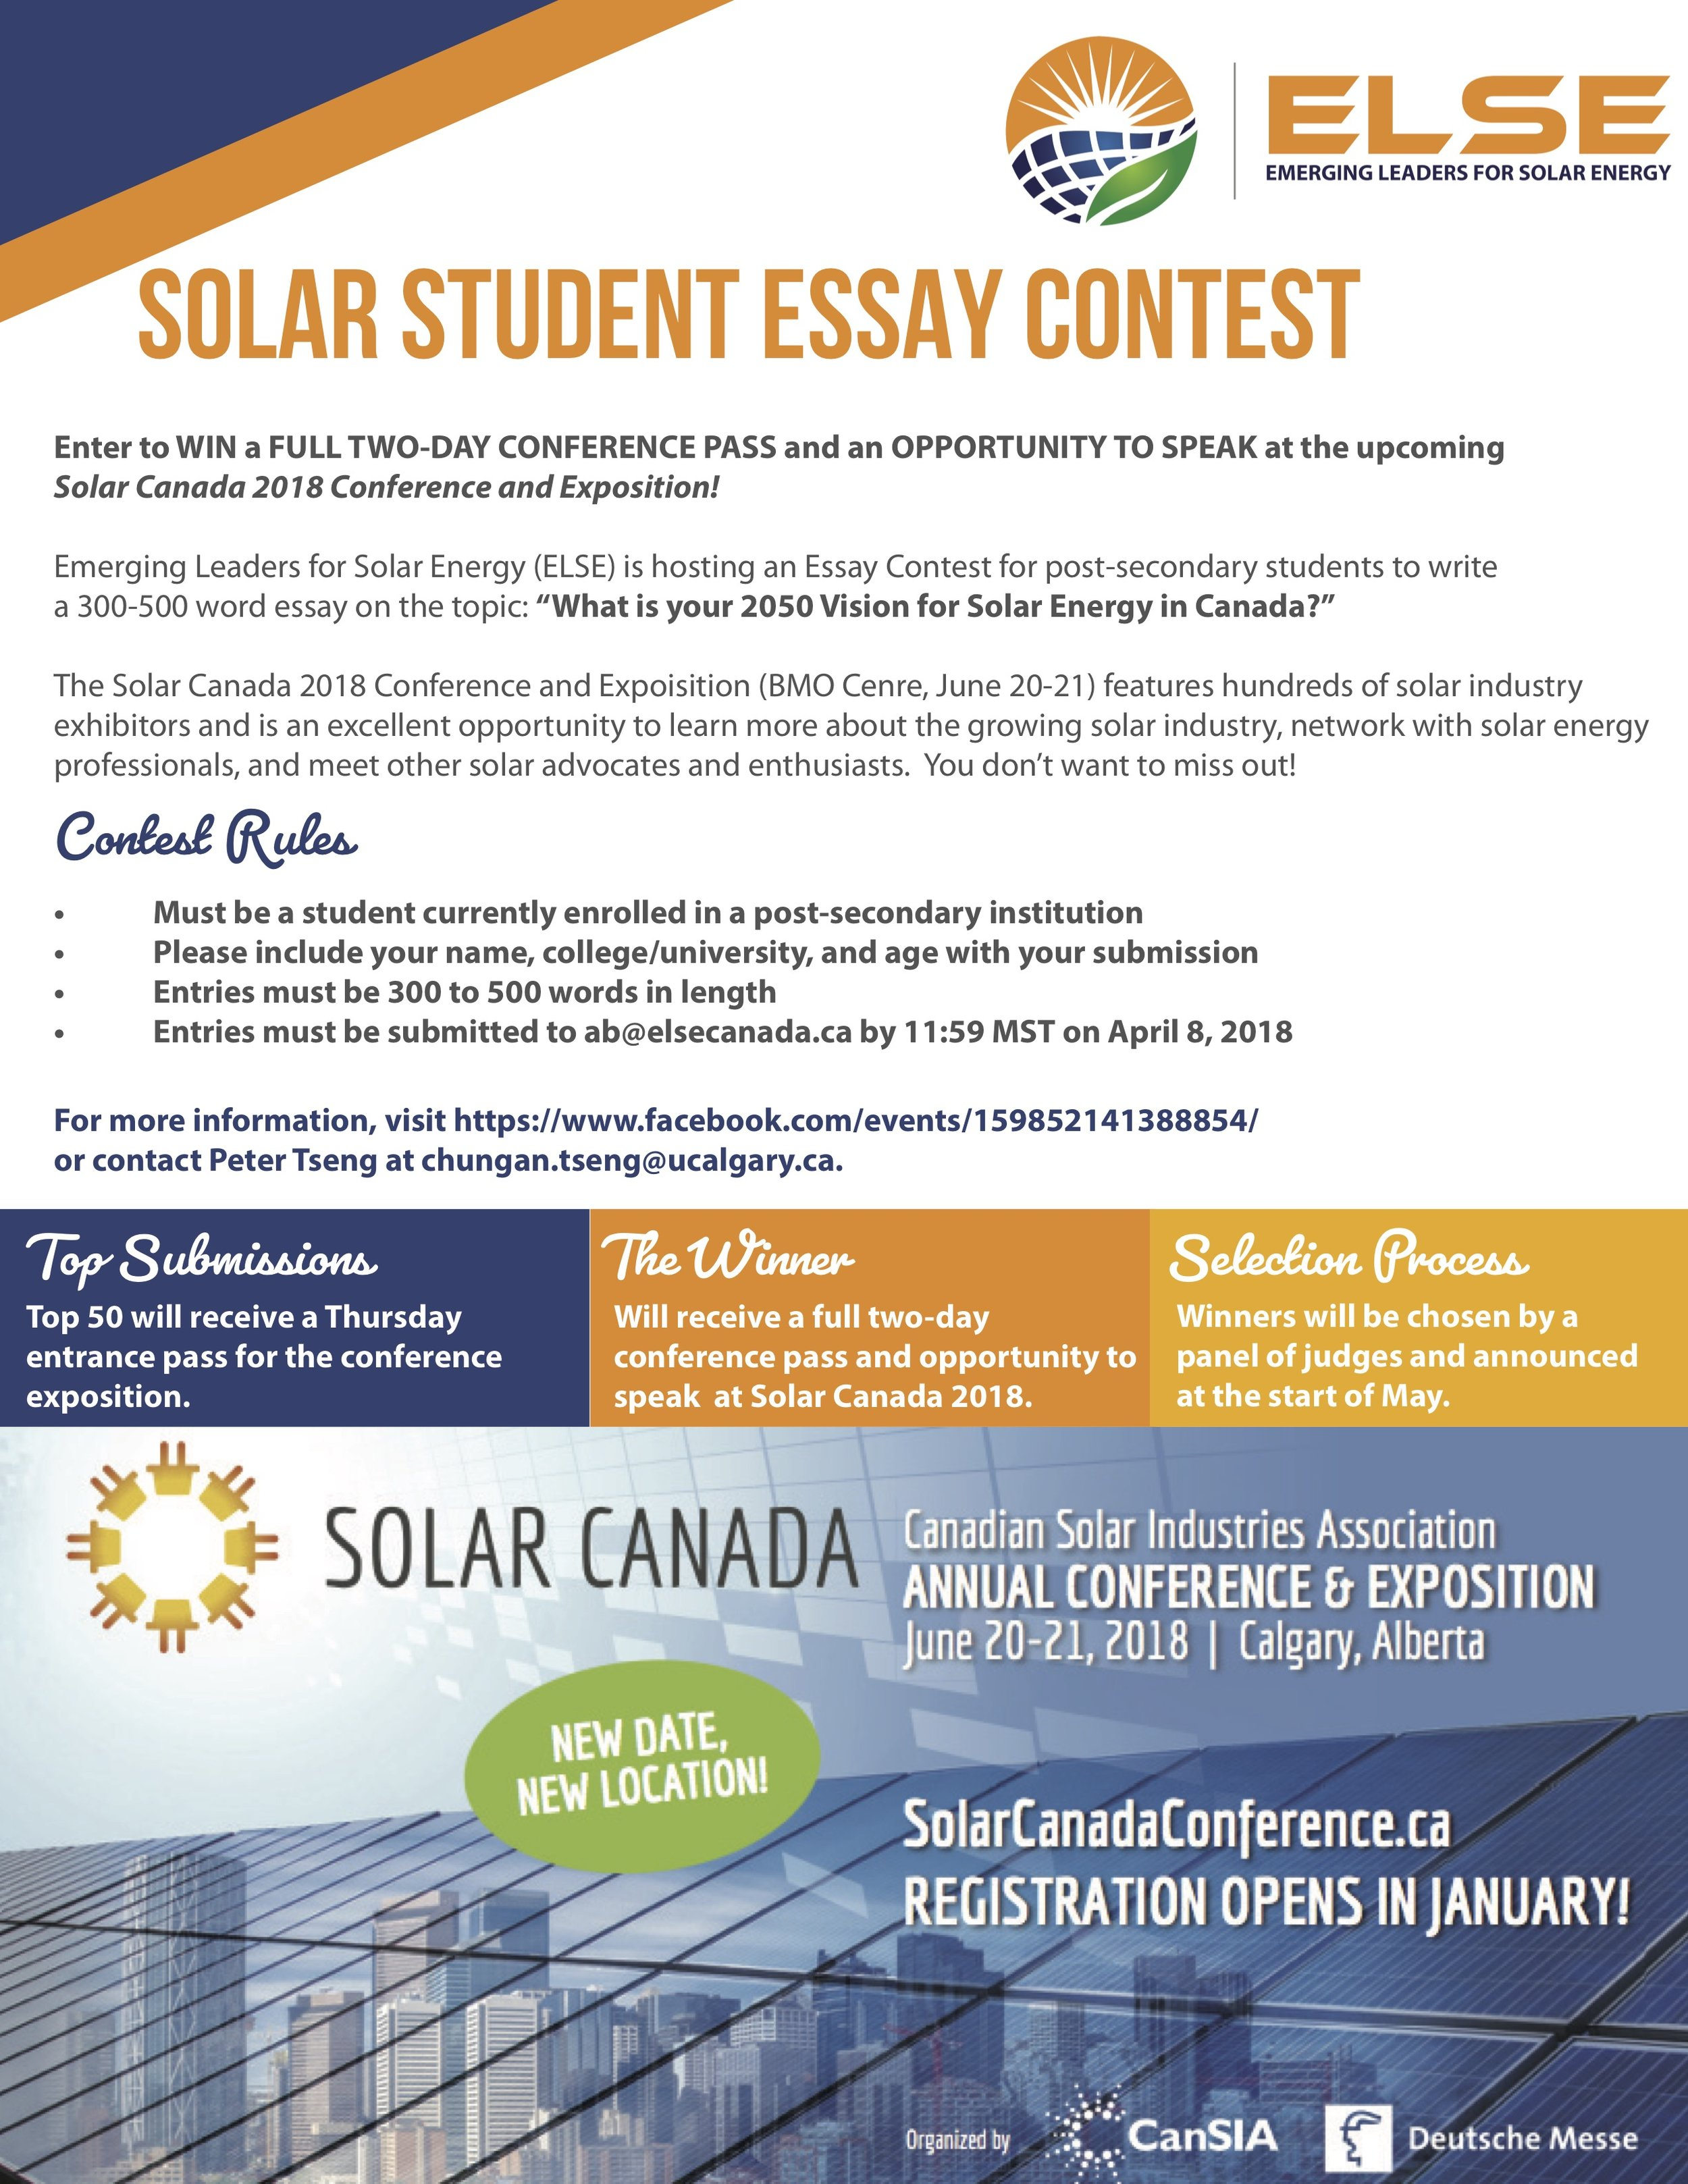 Essay format for contest